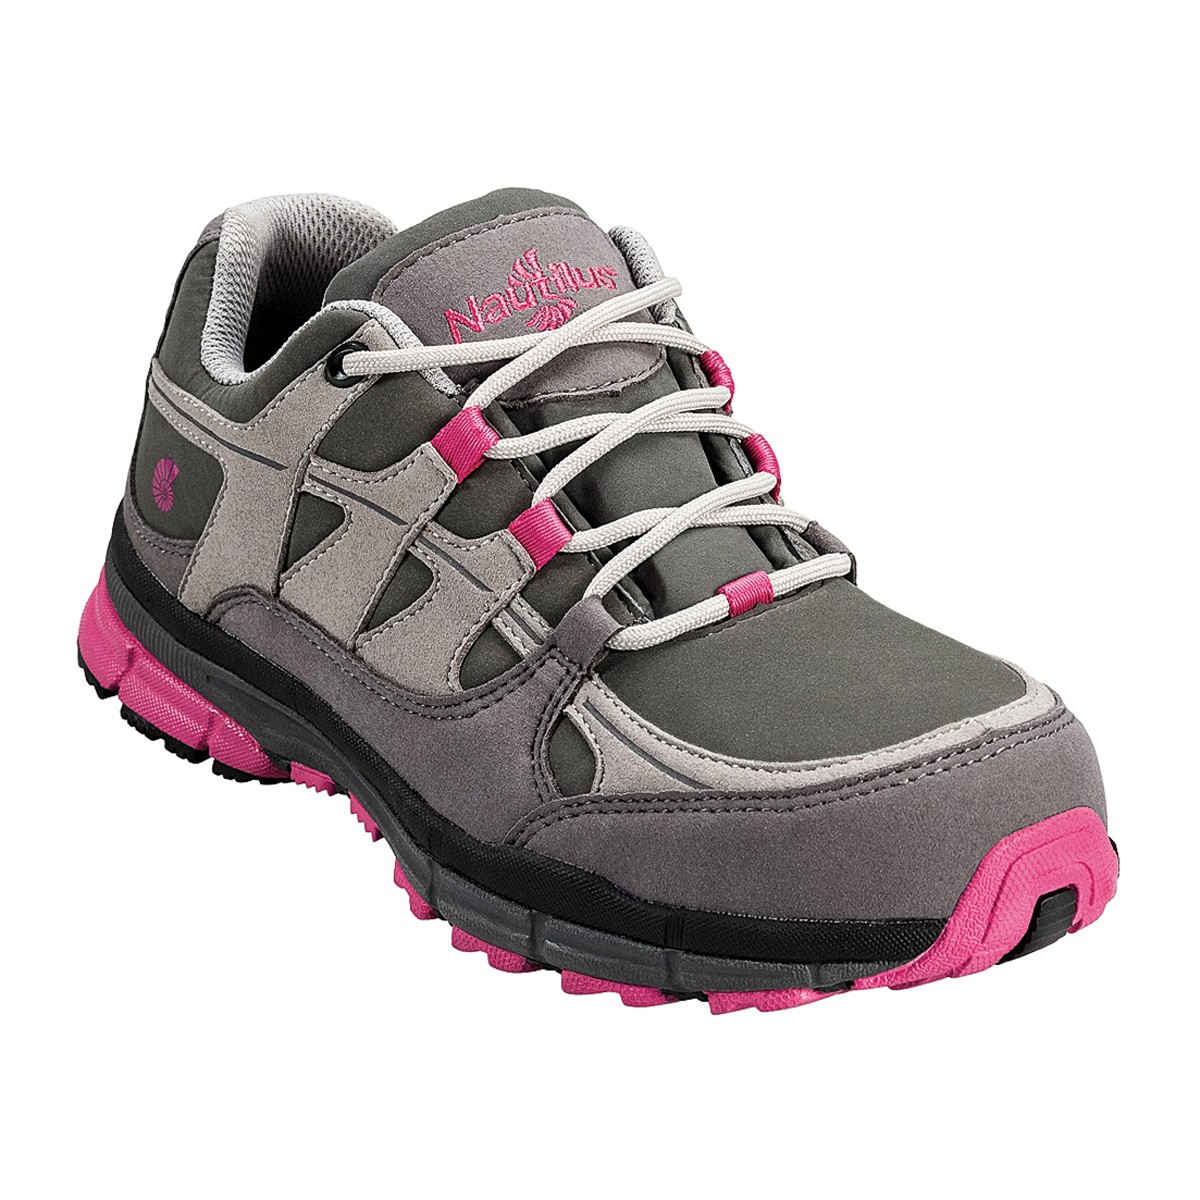 steel toe shoes for women nautilus womenu0027s pink and grey steel toe shoe - n1771 losuqpc